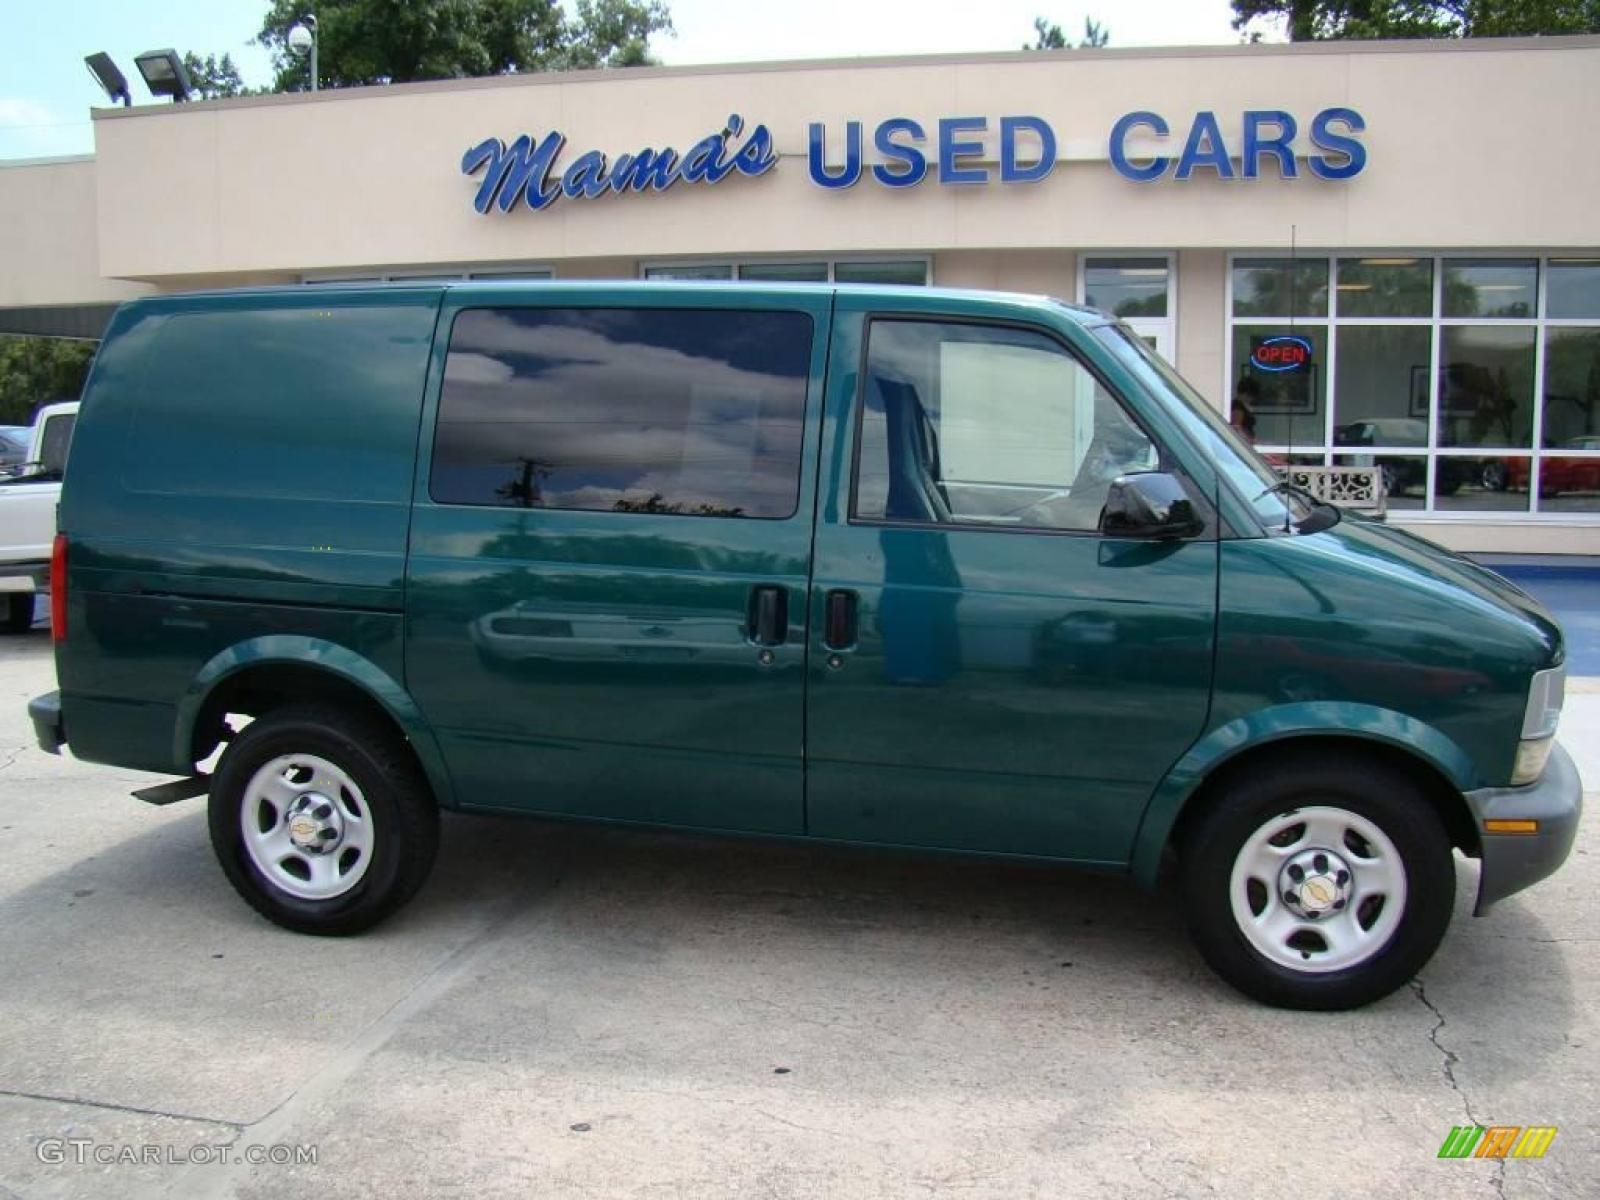 hight resolution of 800 1024 1280 1600 origin 2004 chevrolet astro